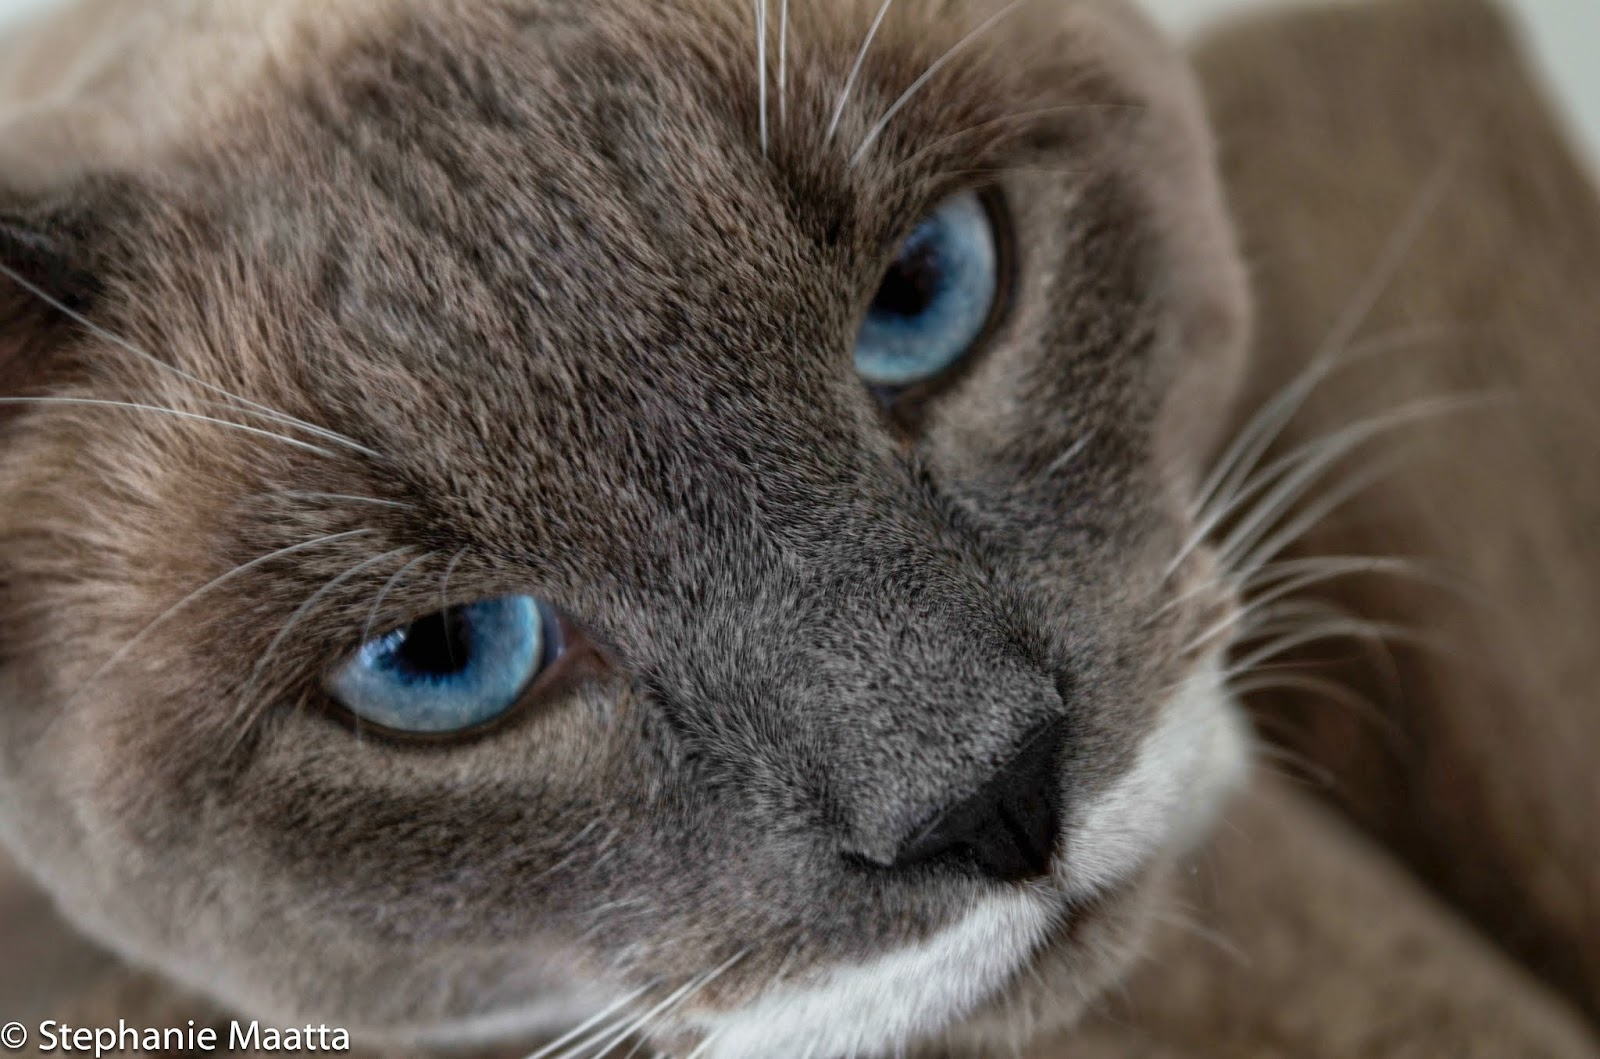 image of Siamese cat with blue eyes